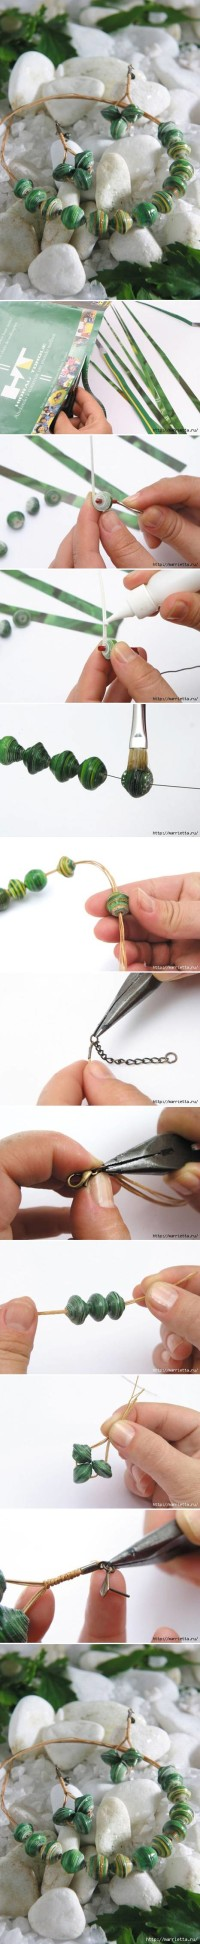 How to use Magazine to make jewelry feel necklaces and Earrings step by step DIY tutorial instructions | How To Instructions